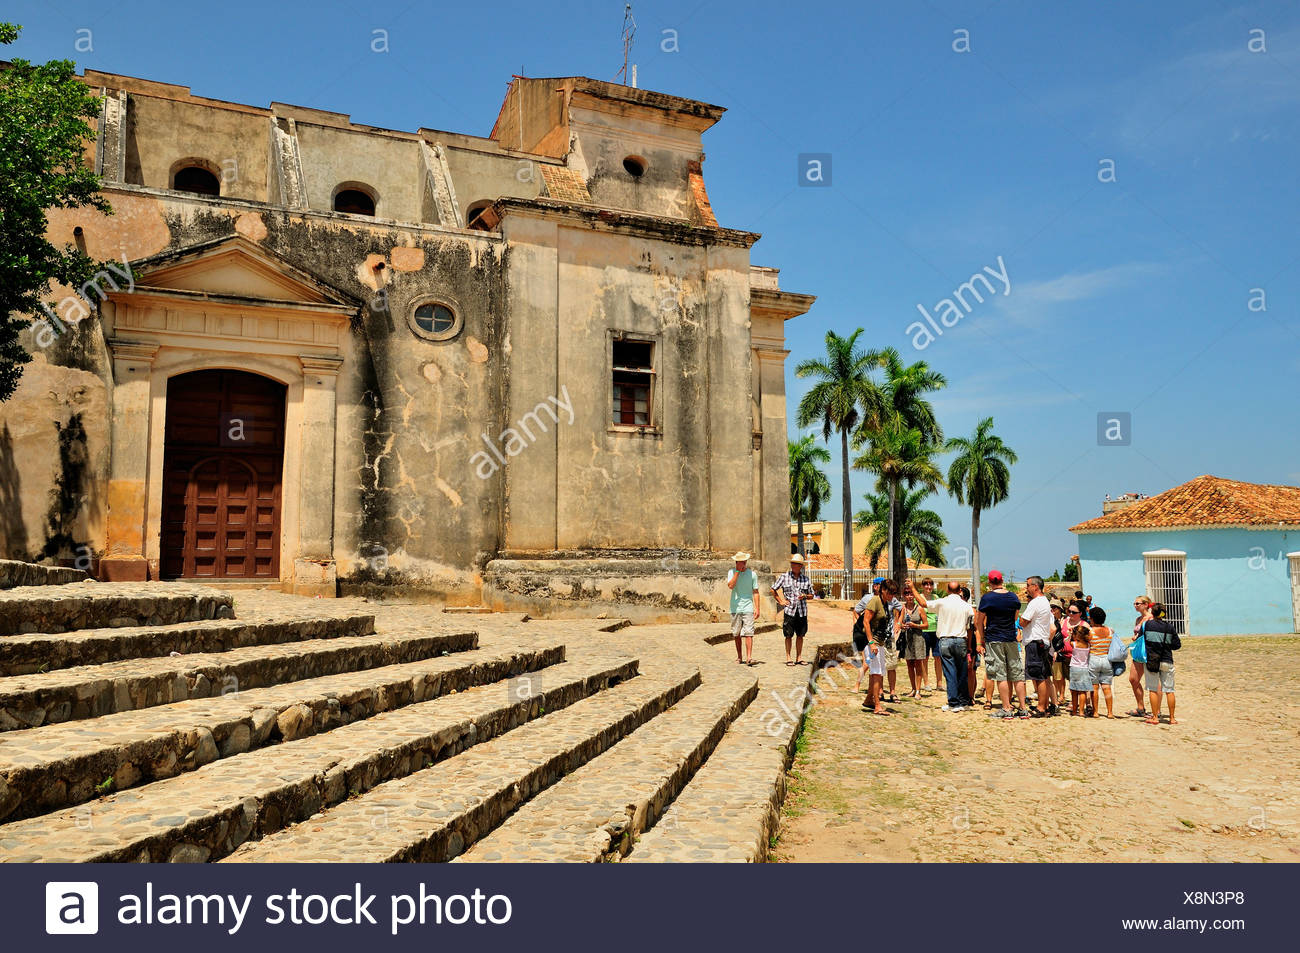 Group of tourists in front of Iglesia Parroquial de la Santísima, Church of the Holy Trinity, Trinidad, Cuba, Caribbean - Stock Image